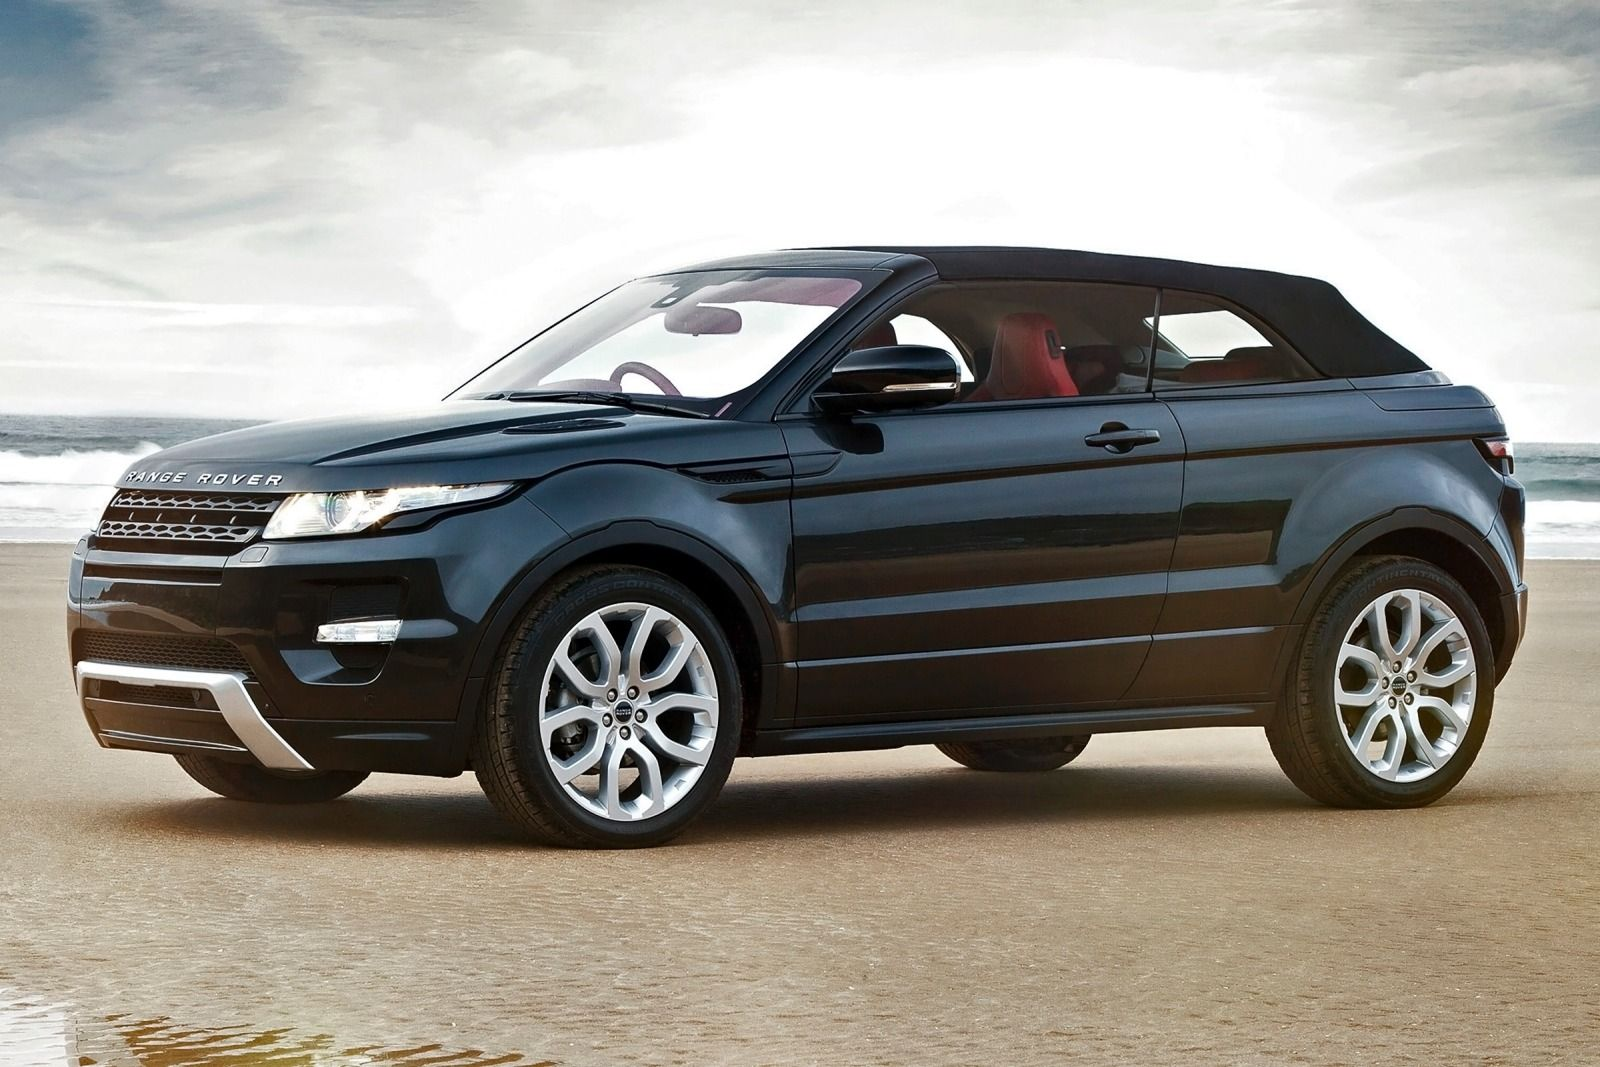 2015 land rover range rover evoque convertible information and photos zombiedrive. Black Bedroom Furniture Sets. Home Design Ideas